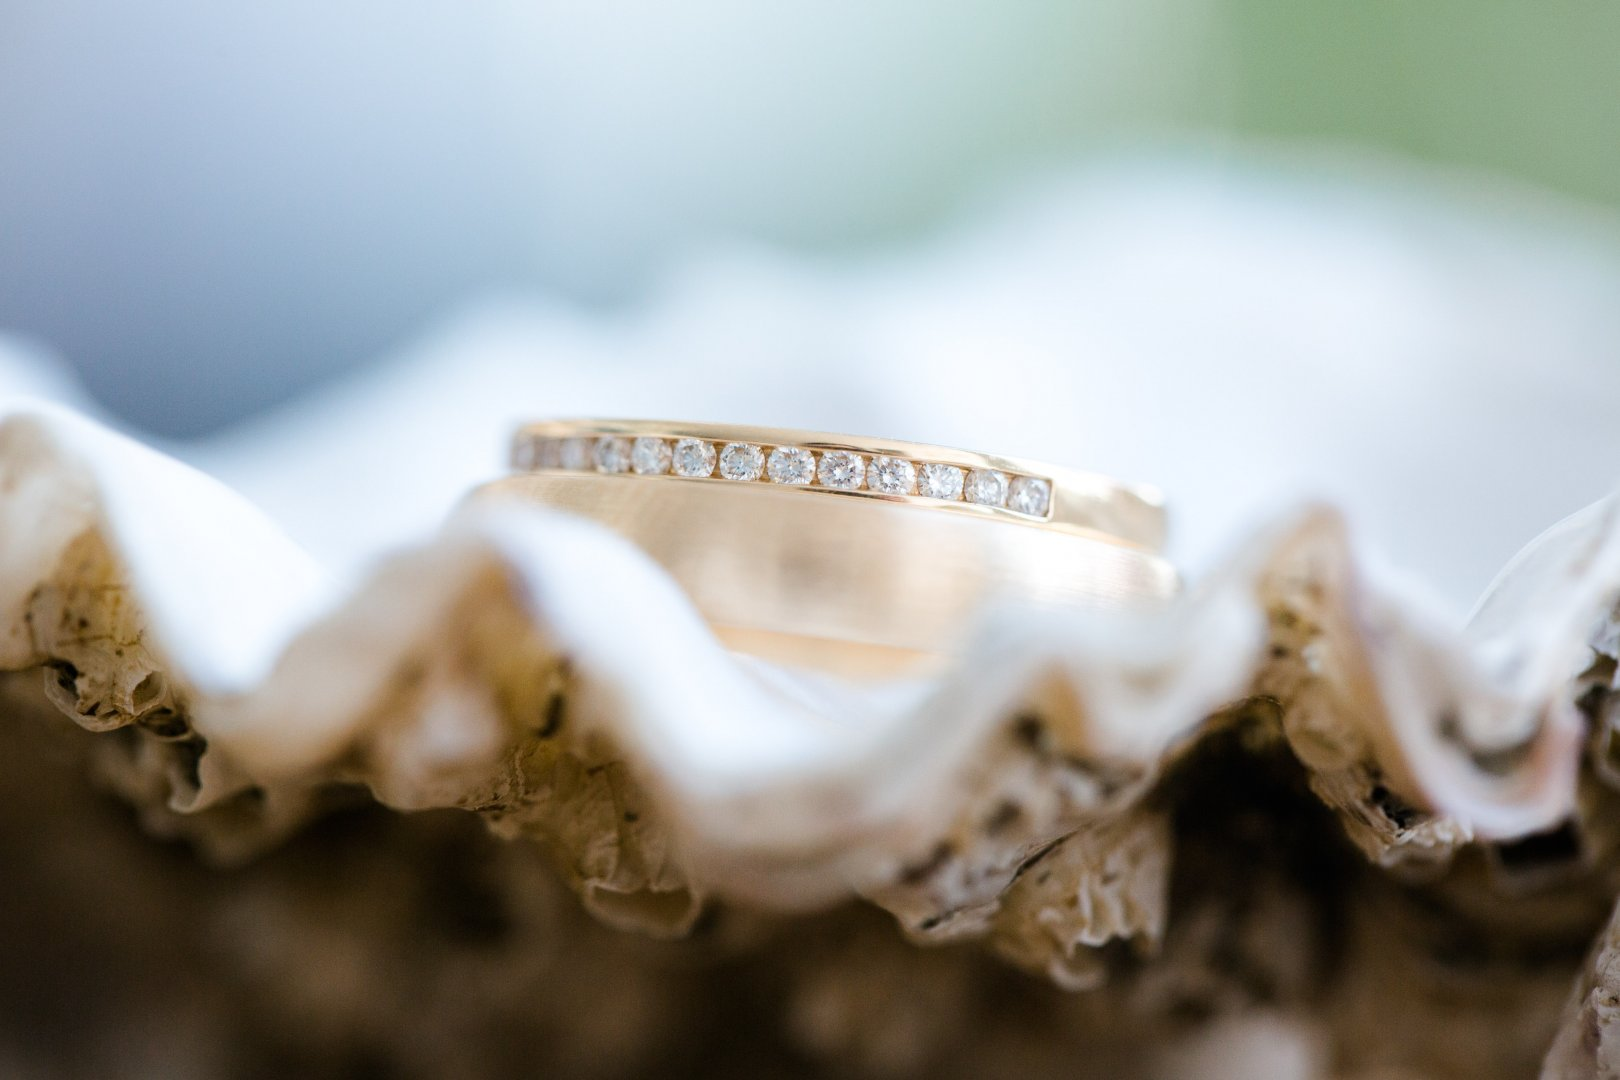 White Photograph Close-up Macro photography Font Photography Cloud Stock photography Jaw Fashion accessory Oyster Jewellery